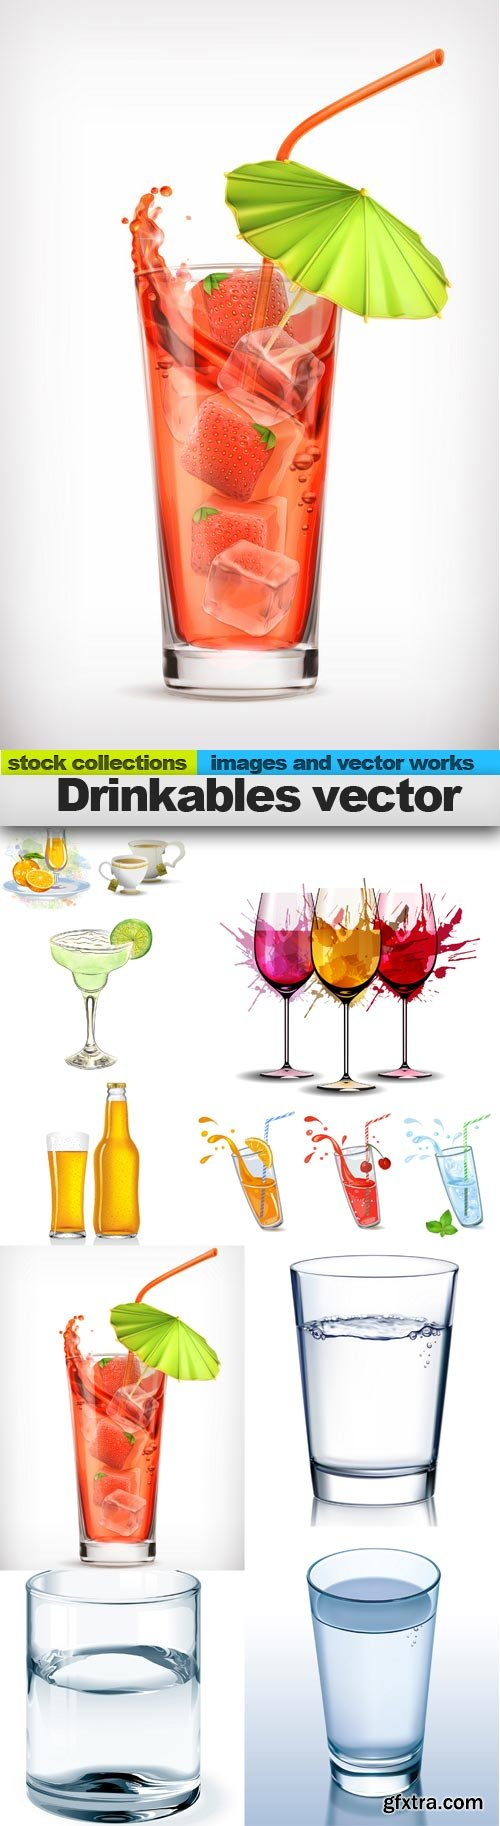 Drinkables vector, 10 x EPS